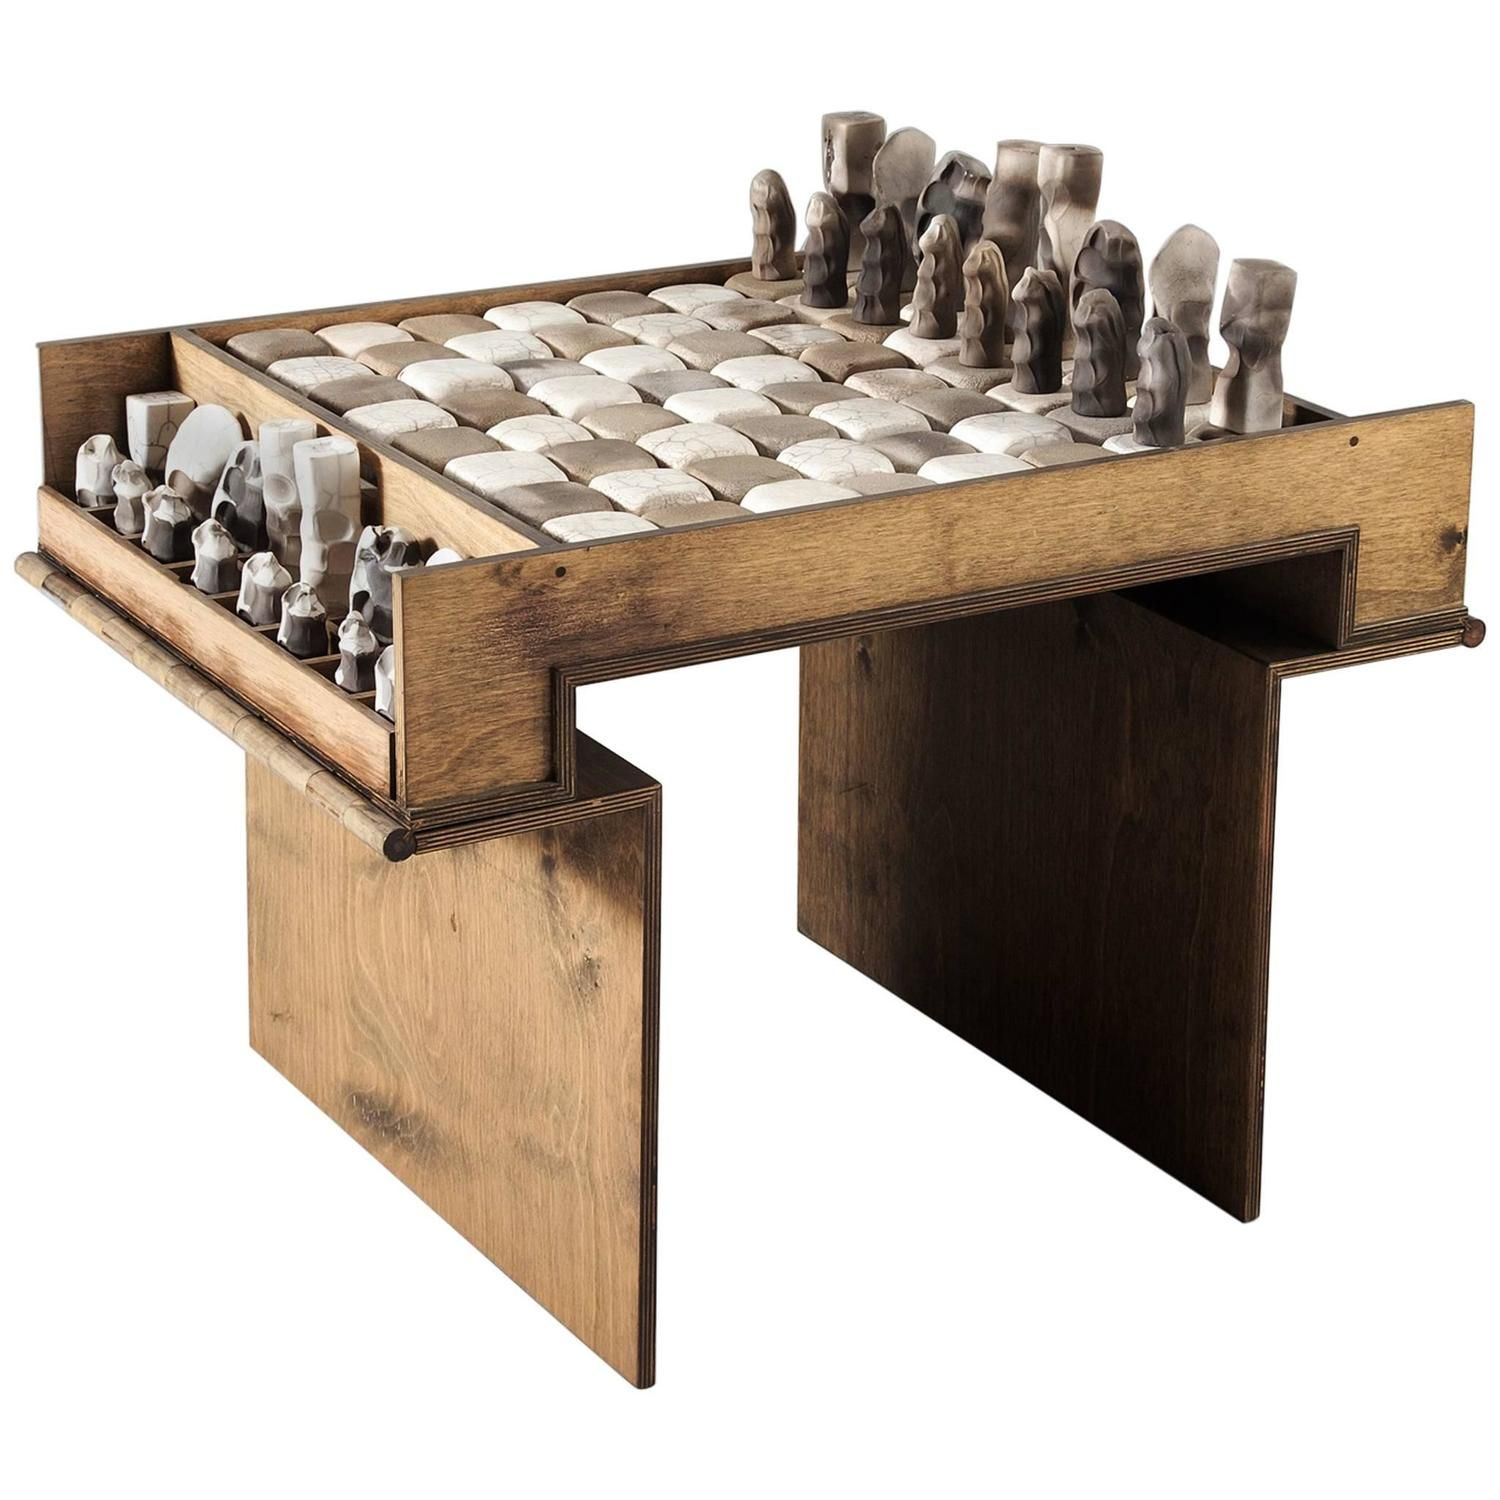 Exceptional Ceramic Chess Set and Table | Pinterest | Chess, Chess ...